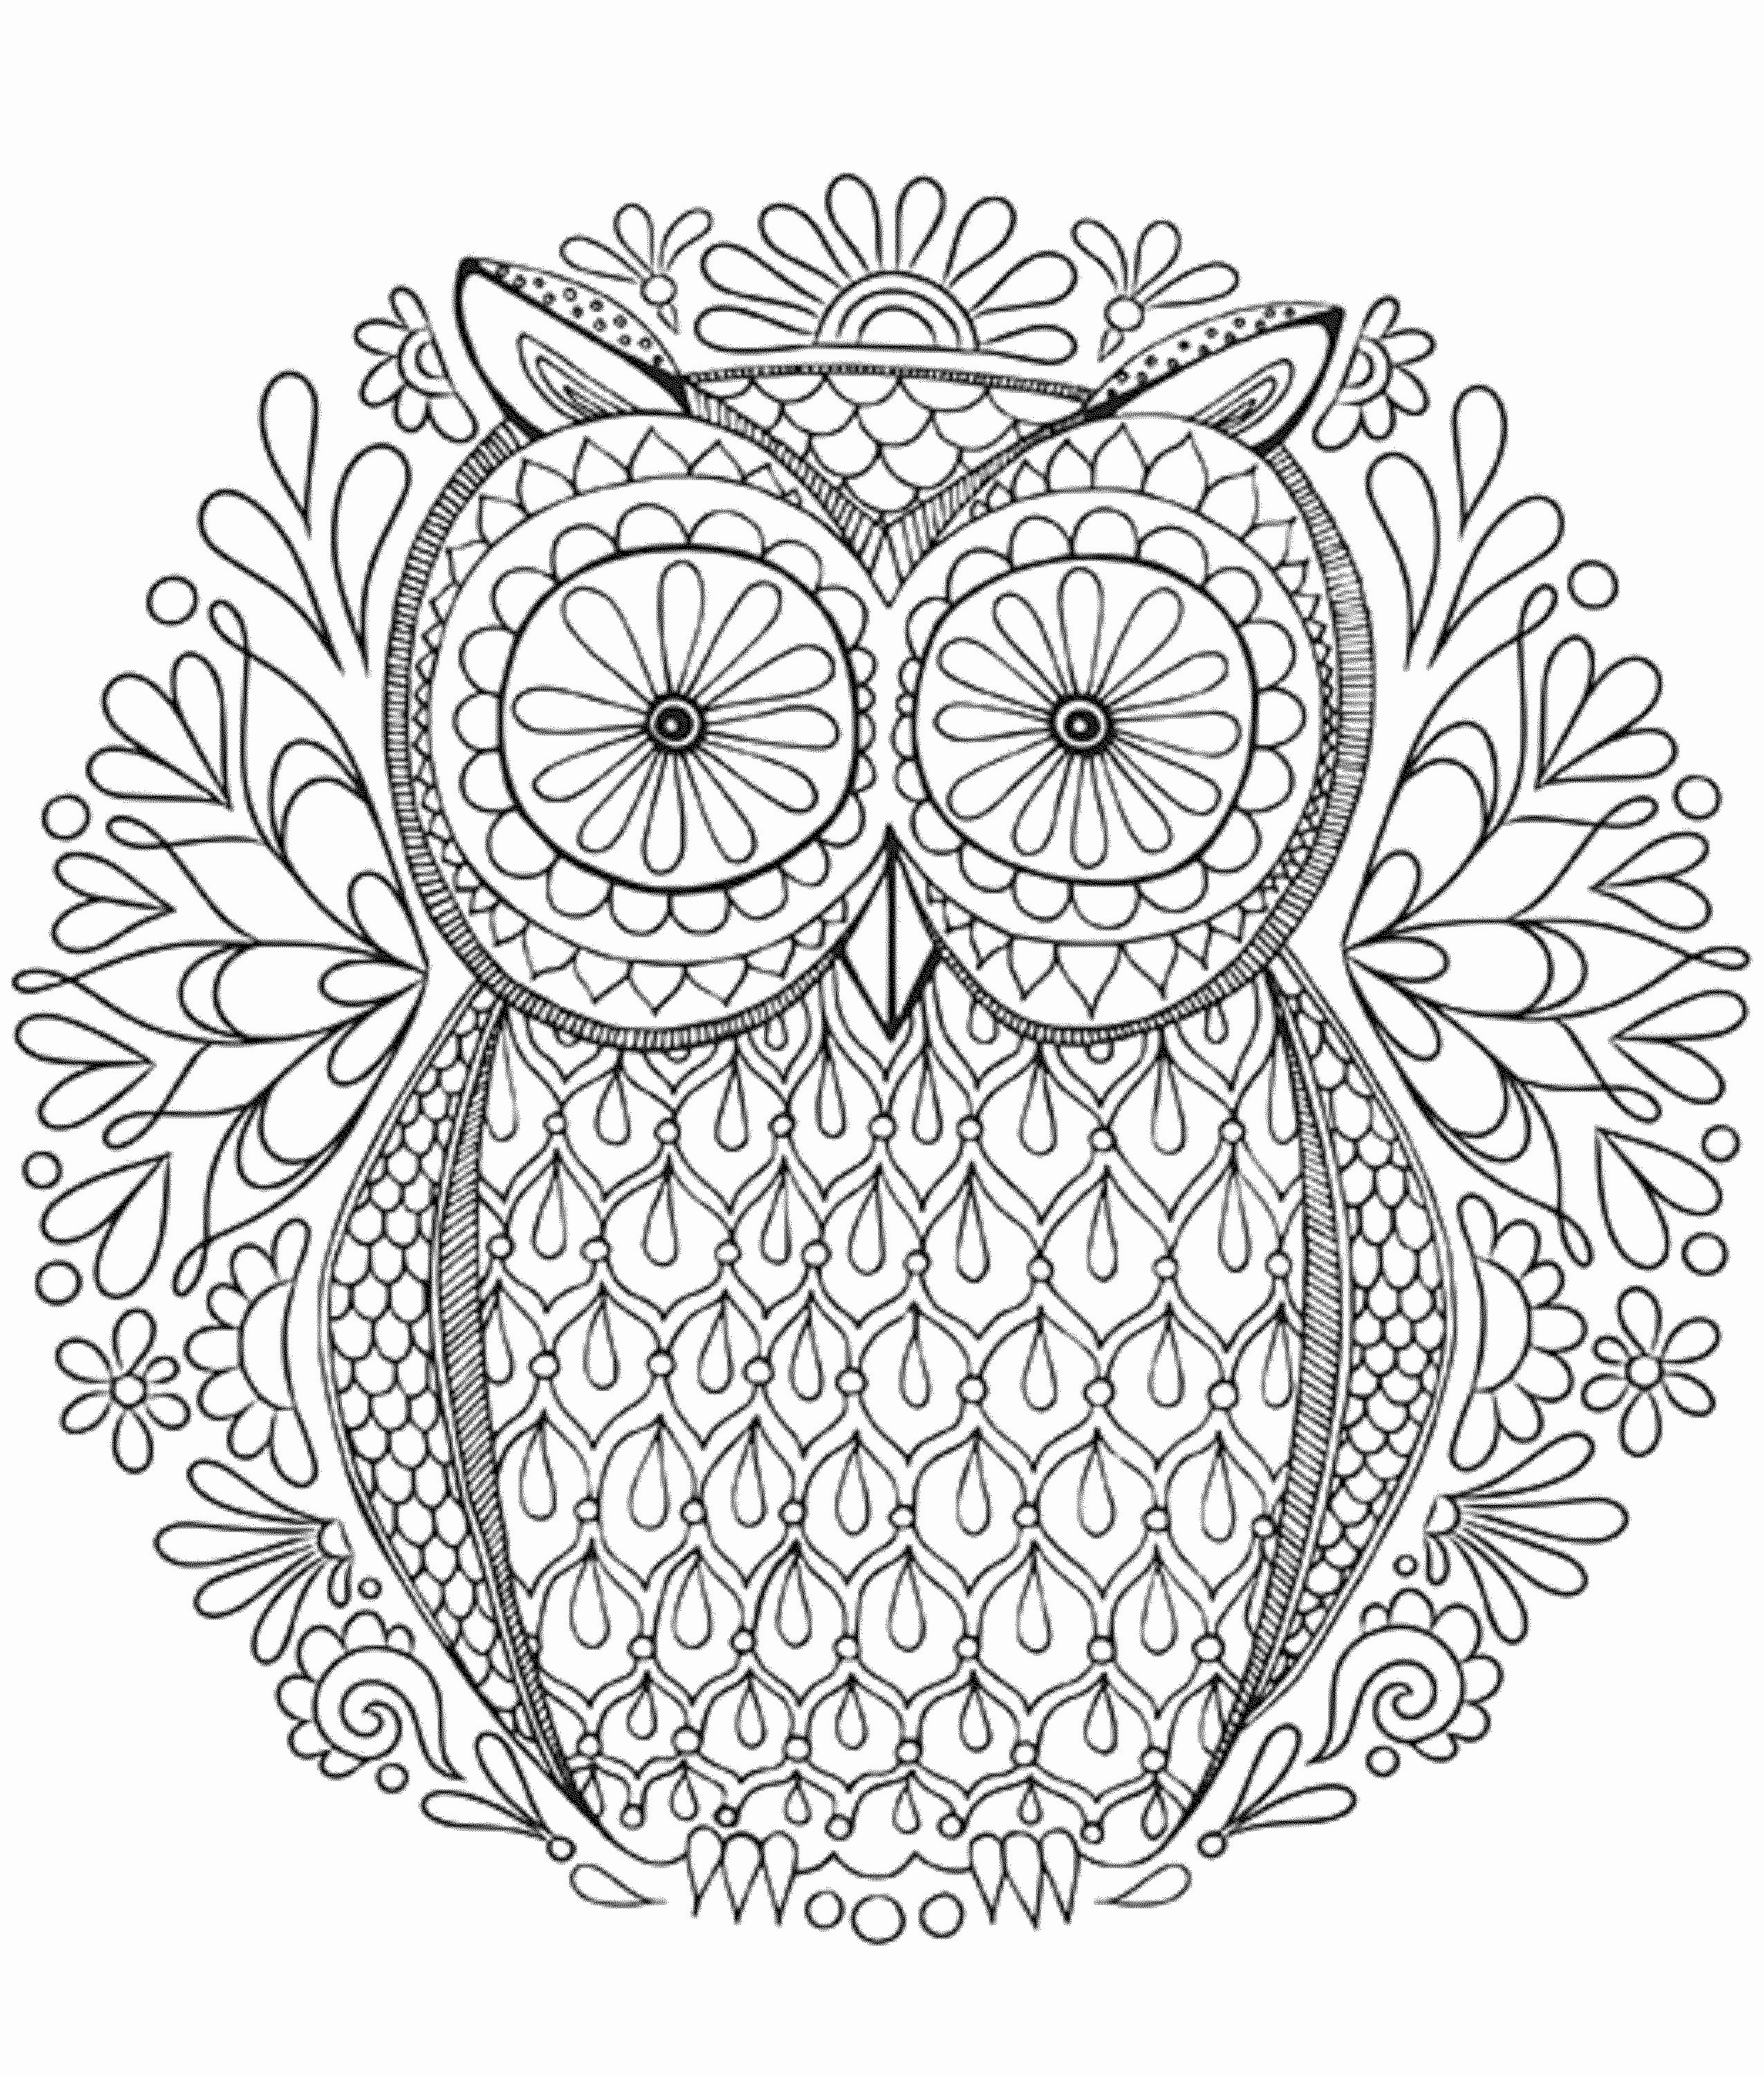 Hard Coloring Books Inspirational Hard Coloring Pages For Adults Best Coloring Pages For Kids Owl Coloring Pages Abstract Coloring Pages Animal Coloring Pages [ 3003 x 2551 Pixel ]